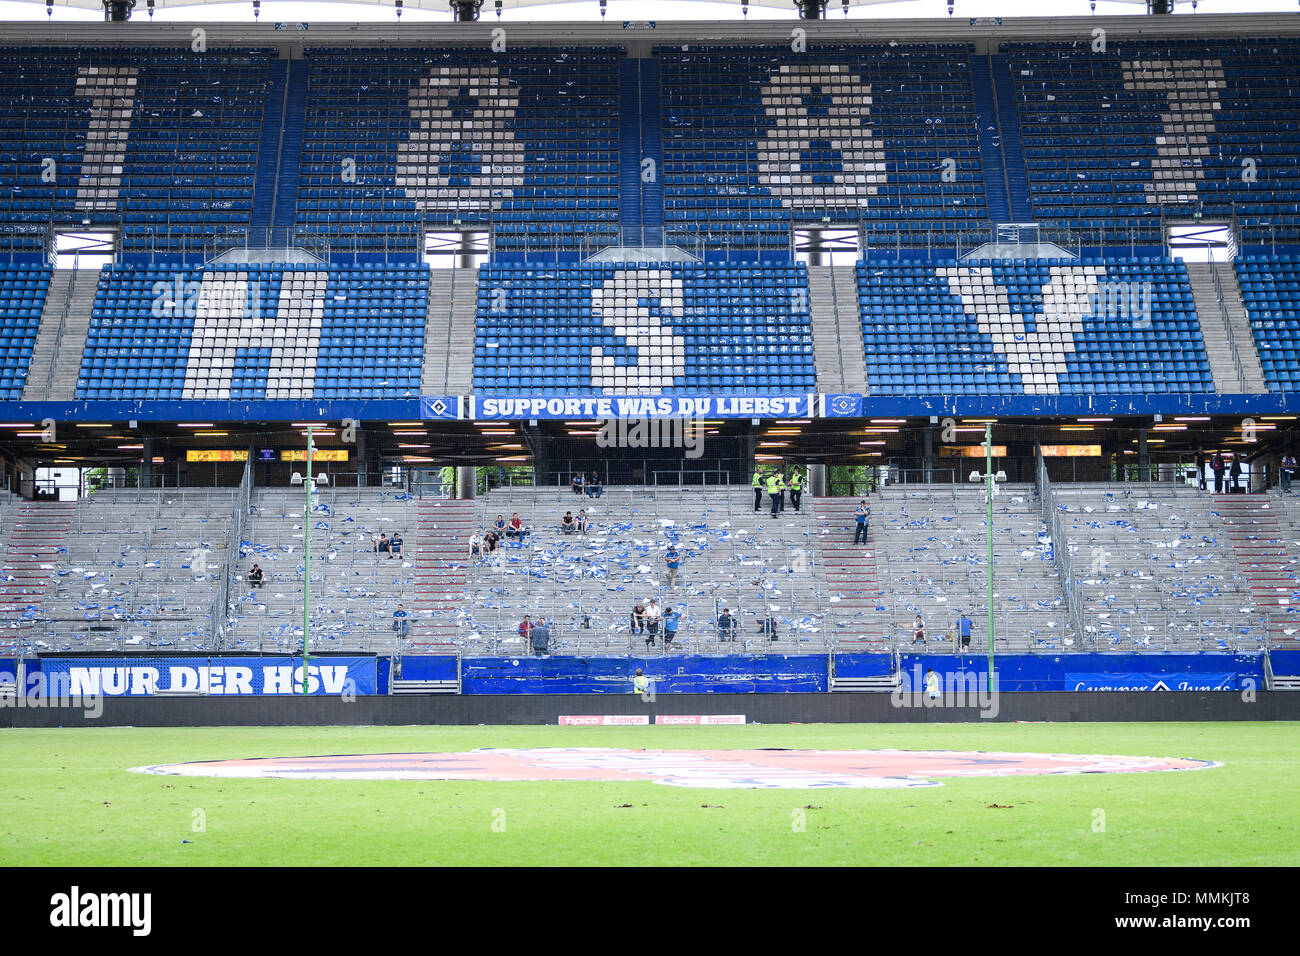 Hamburg Deutschland 12th May 2018 The Abandoned Fan Block After The Descent Ges Soccer 1 Bundesliga Hsv Hamburg Hamburg Hamburg Borussia Monchengladbach 12 05 2018 Football Soccer 1st League Hsv Hamburg Hamburg Hamburg Vs Borussia